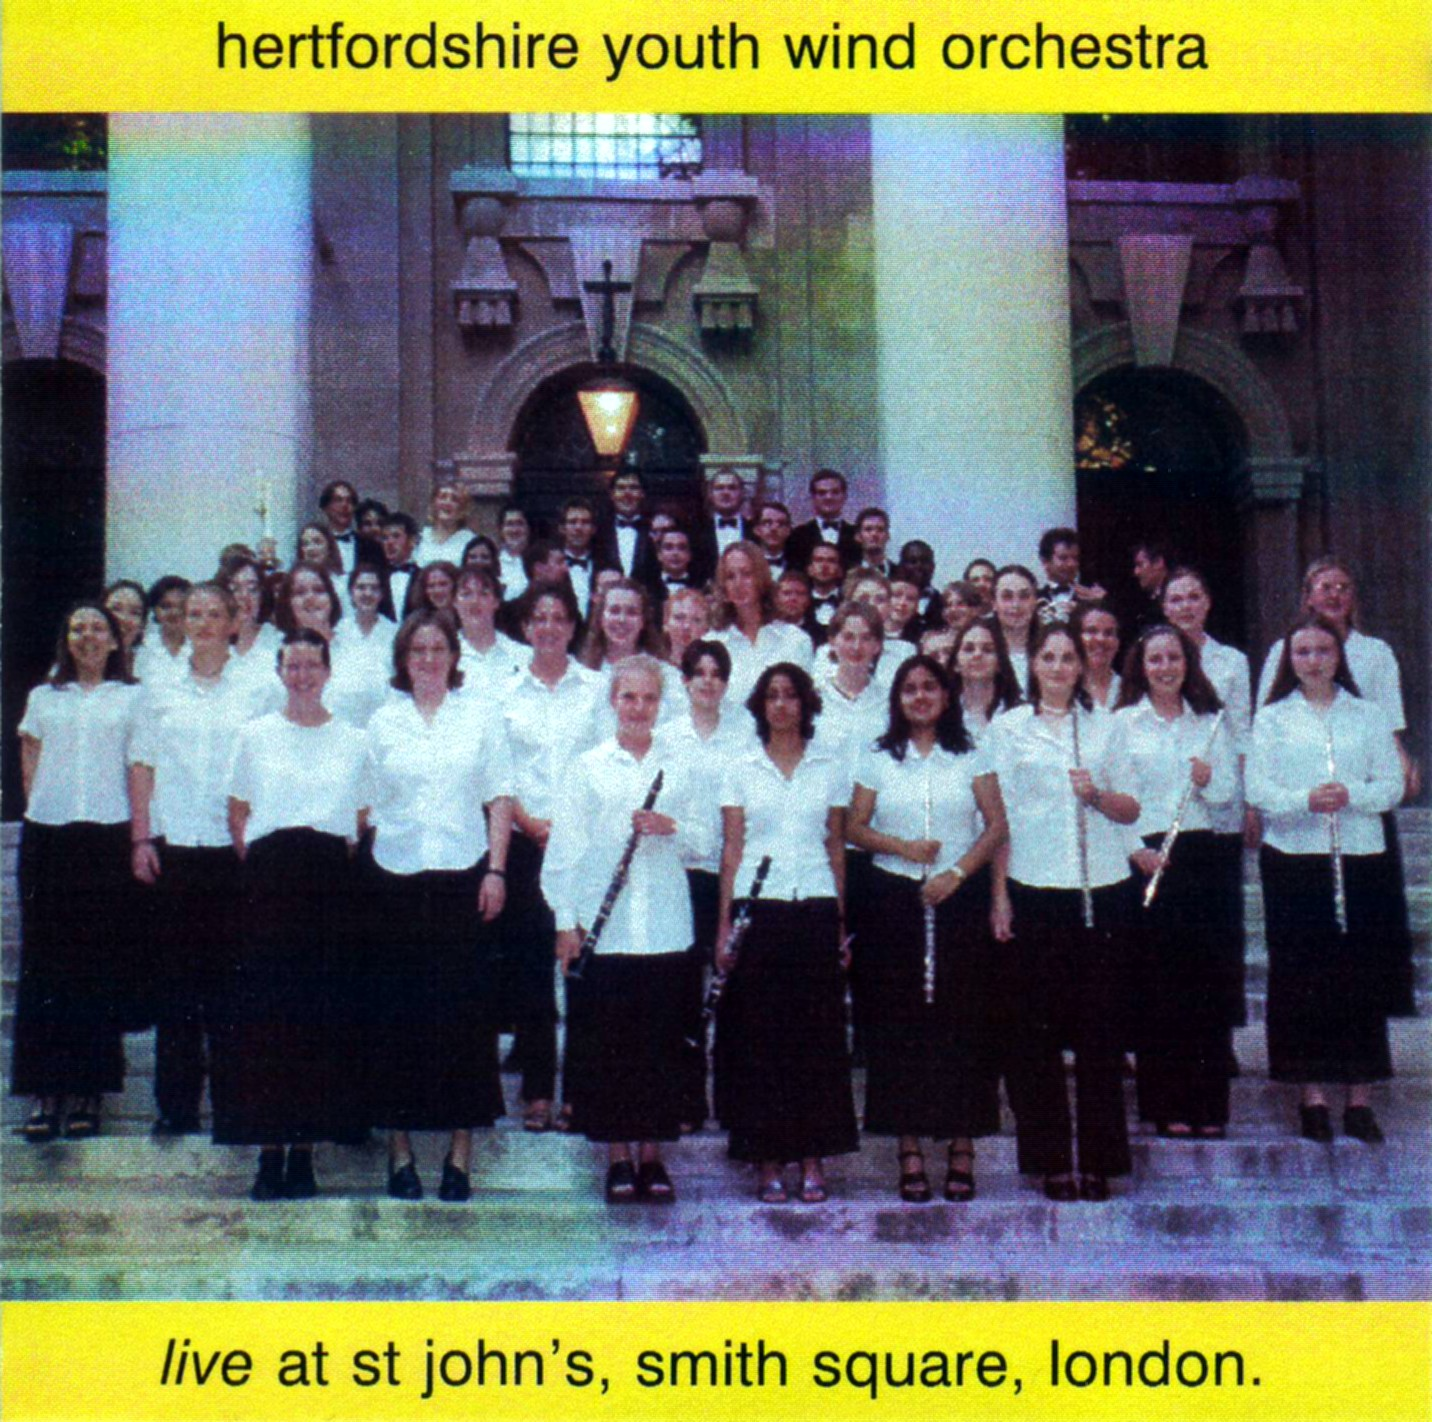 Hertfordshire Youth Wind Orchestra